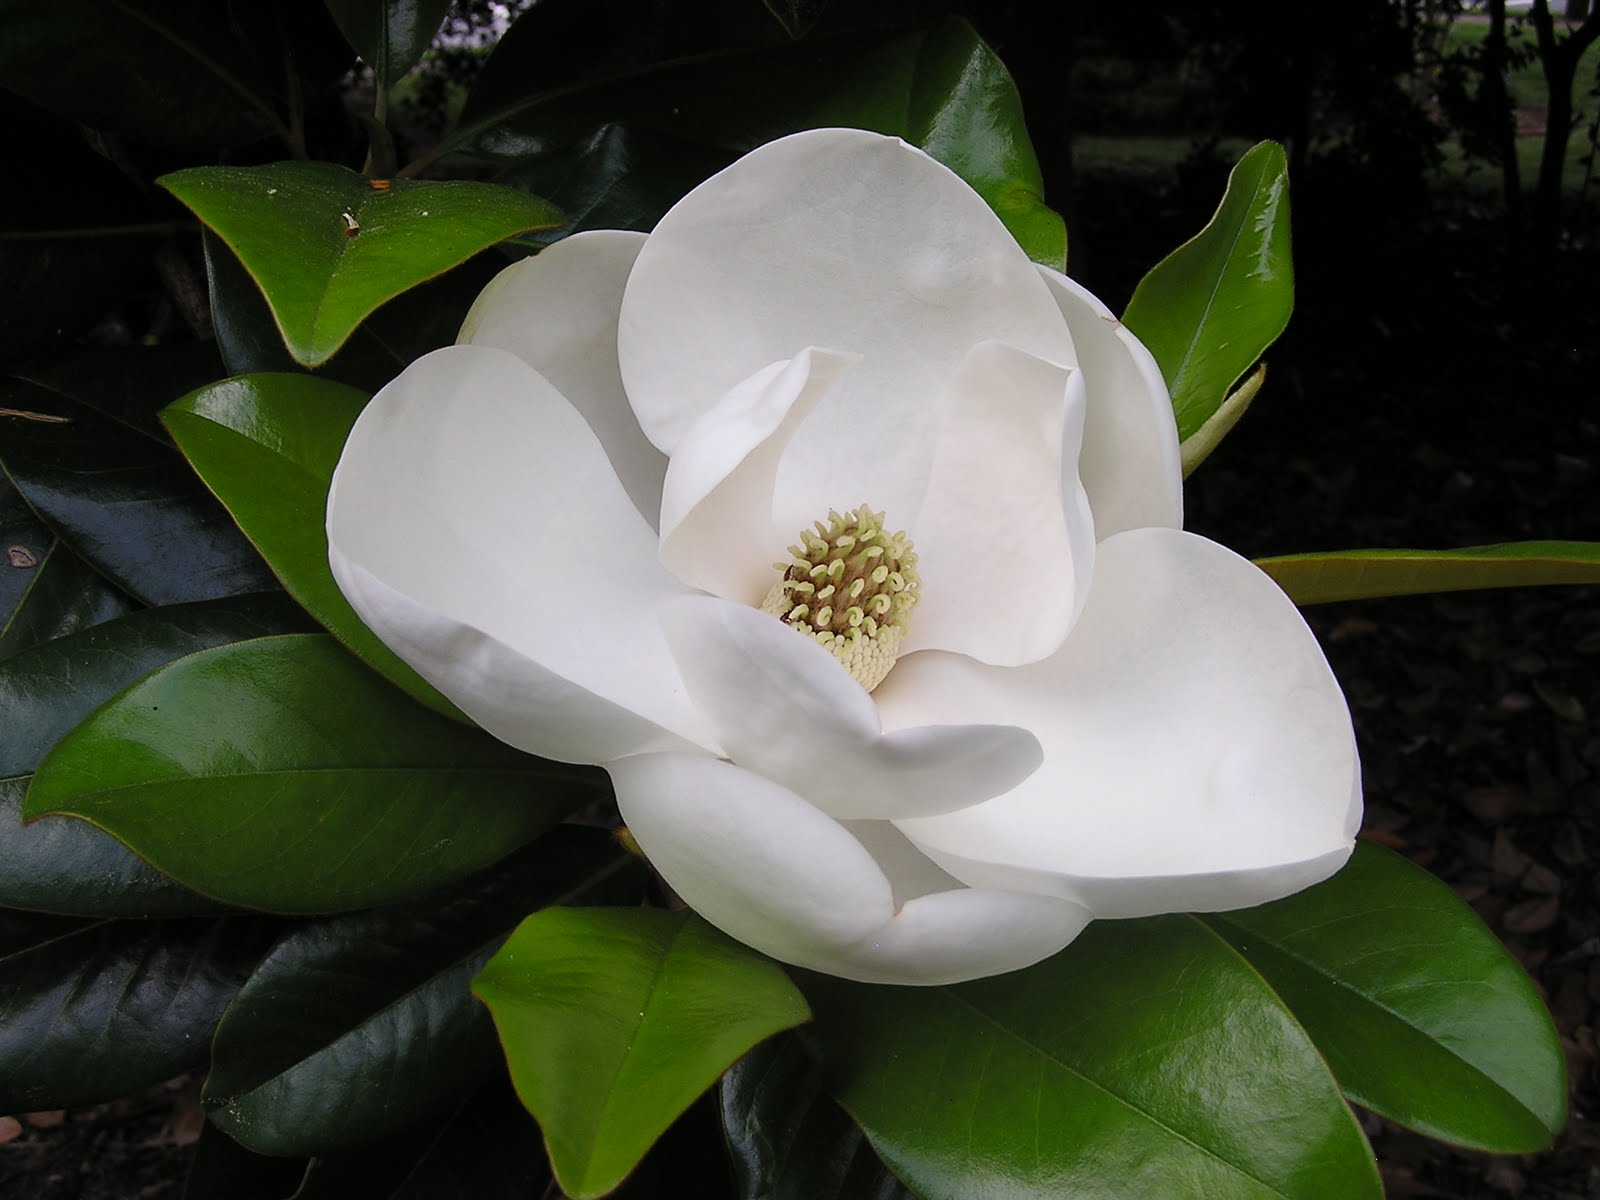 Magnolia Flowering Plant 1032.05 Kb